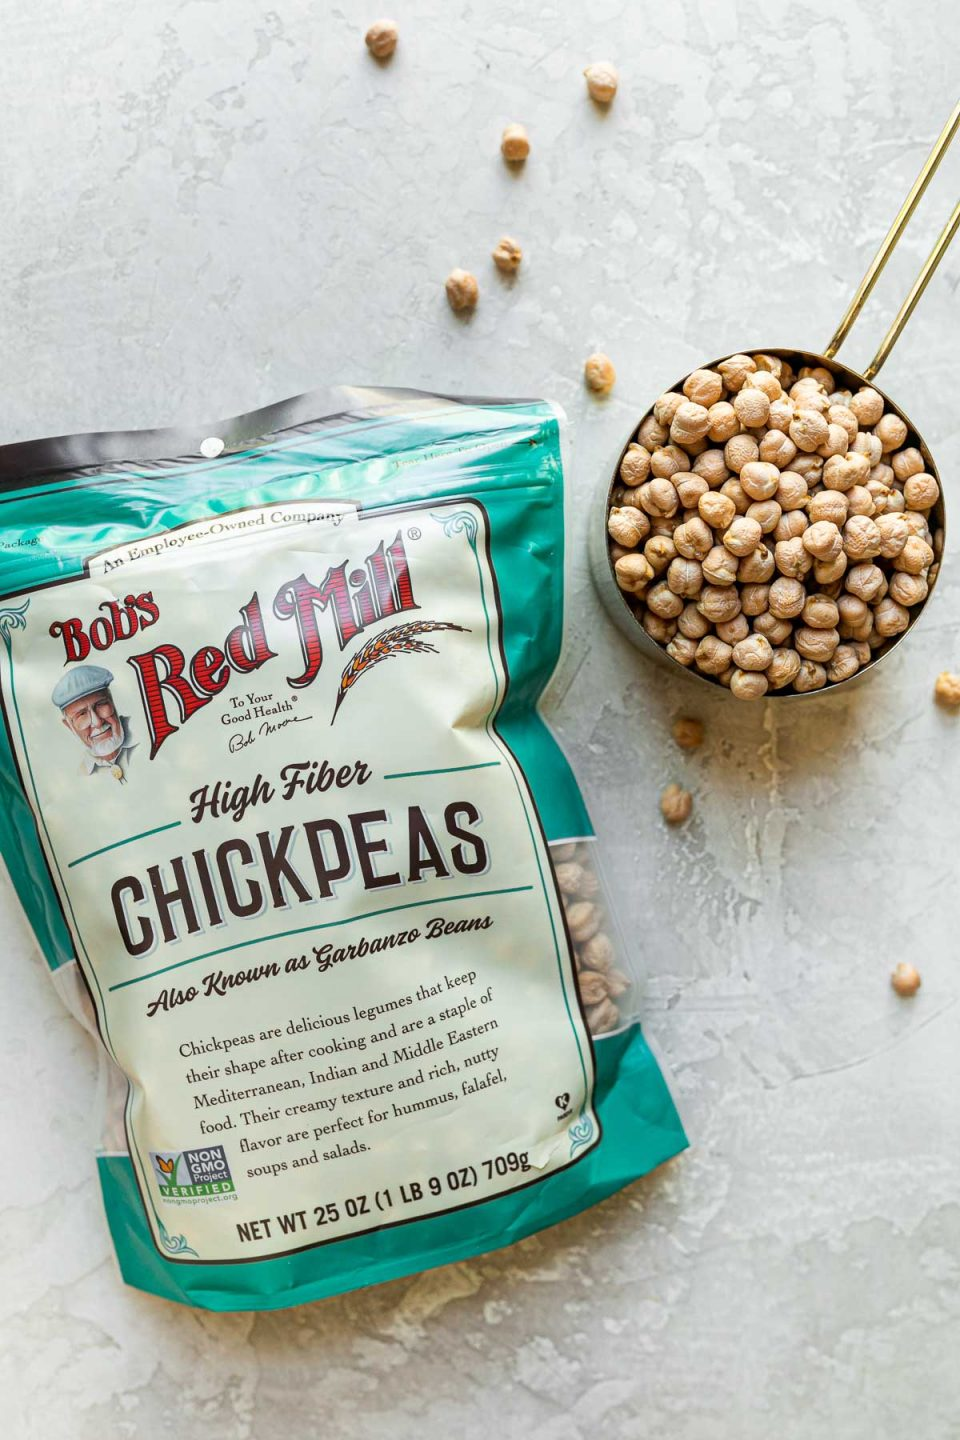 Grilled Falafel Burger staple ingredient arranged on a white textured surface: A package of Bob's Red Mill Dried Chickpeas rests on the surface with a measuring cup of dried chickpeas sitting alongside it, & loose dried chickpeas spread scattered around.